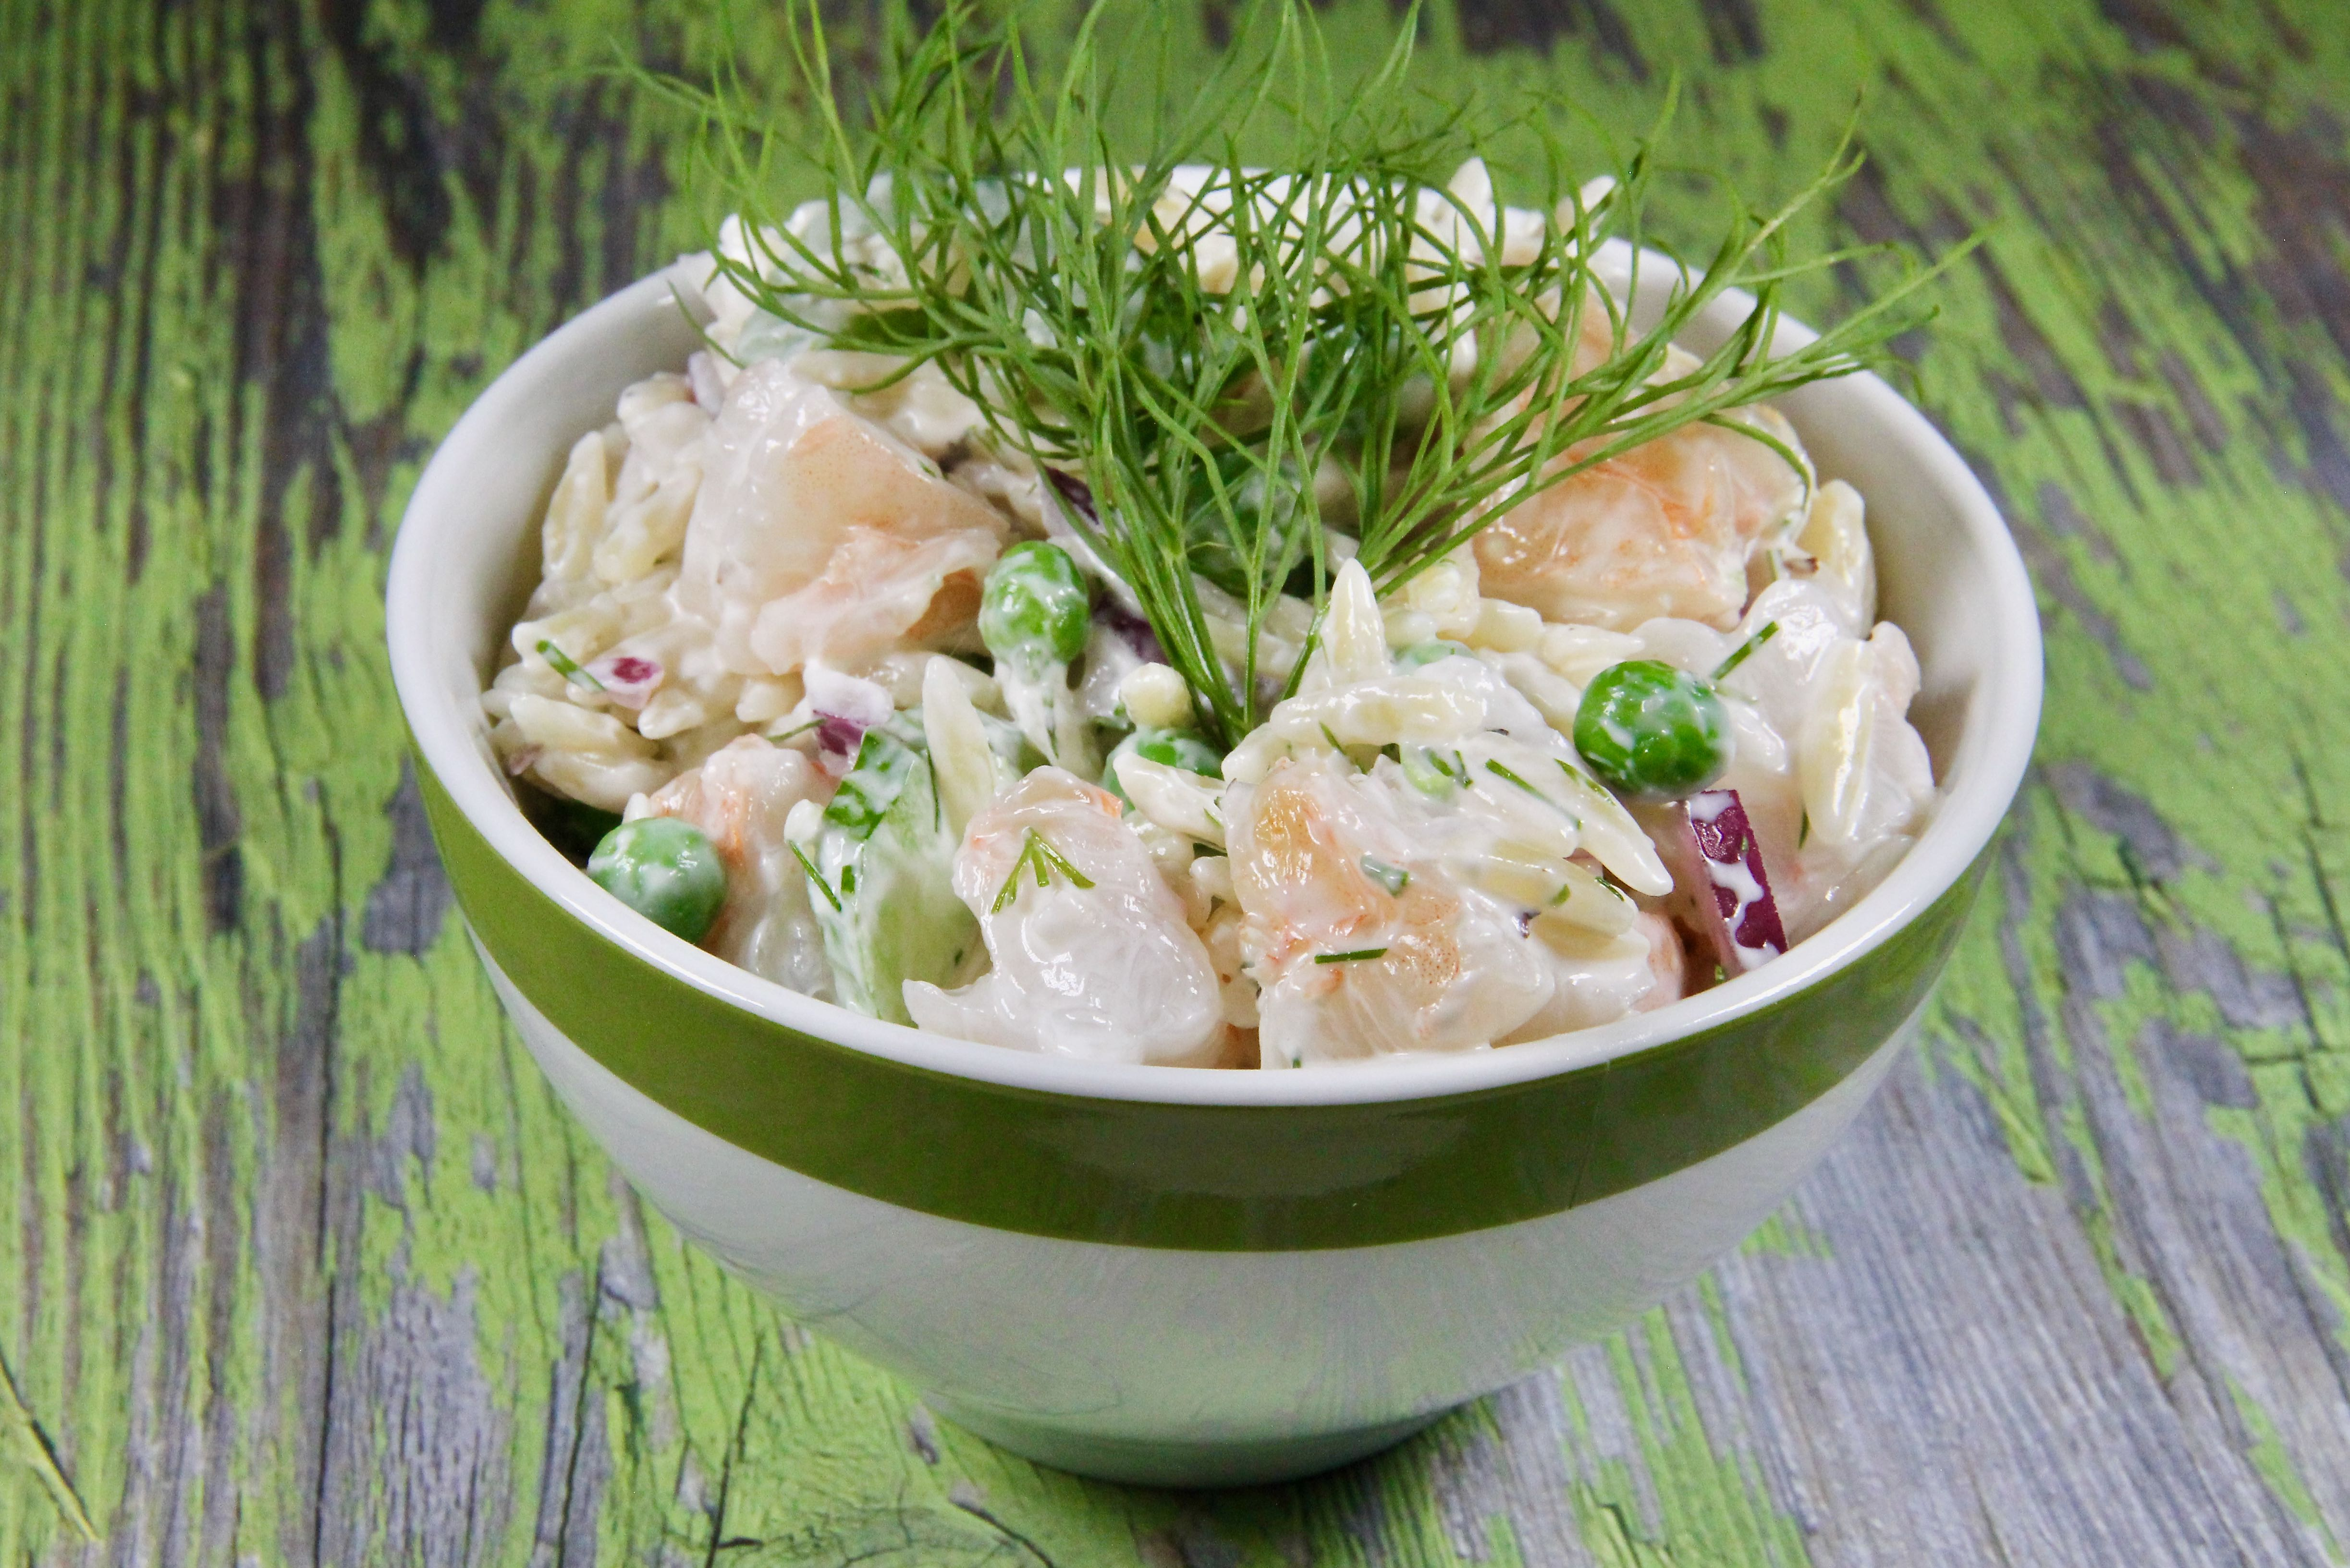 Shrimp Pasta Salad With Dill image